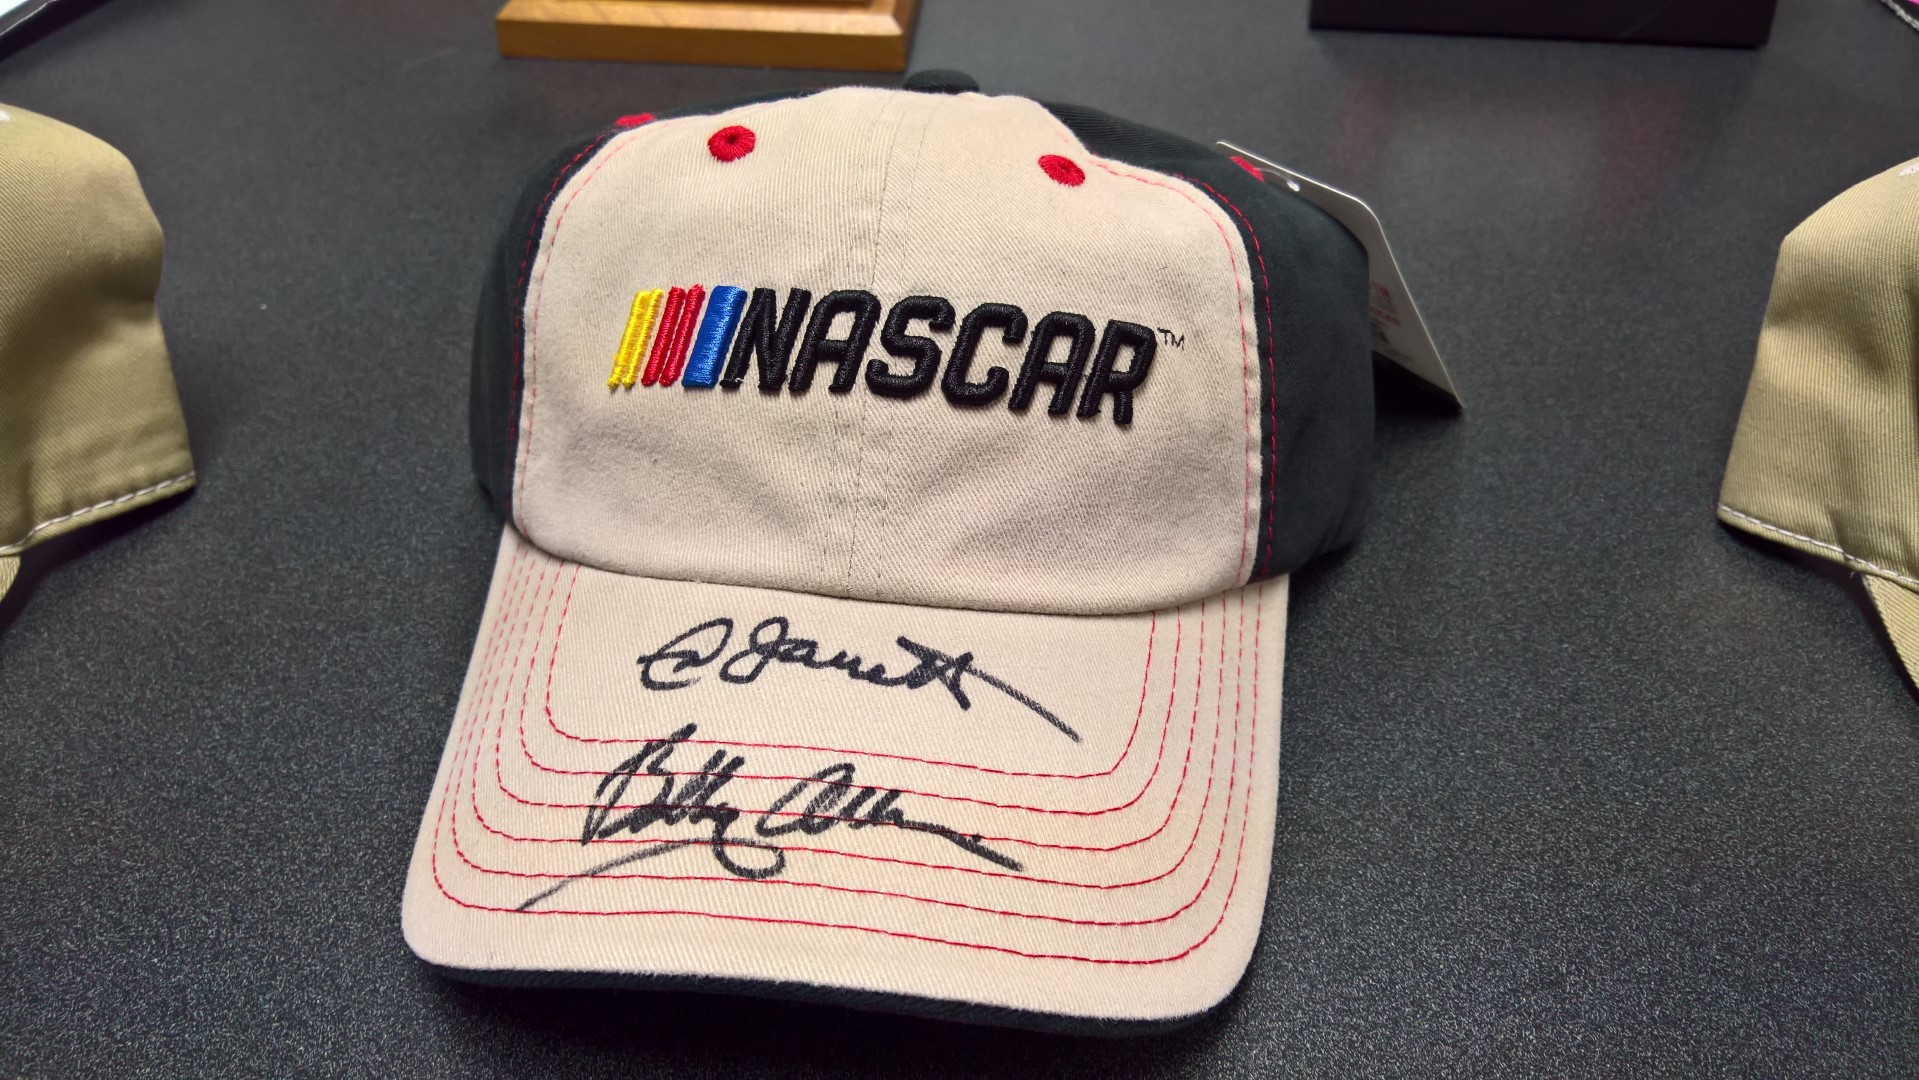 Signed NASCAR Ball Cap